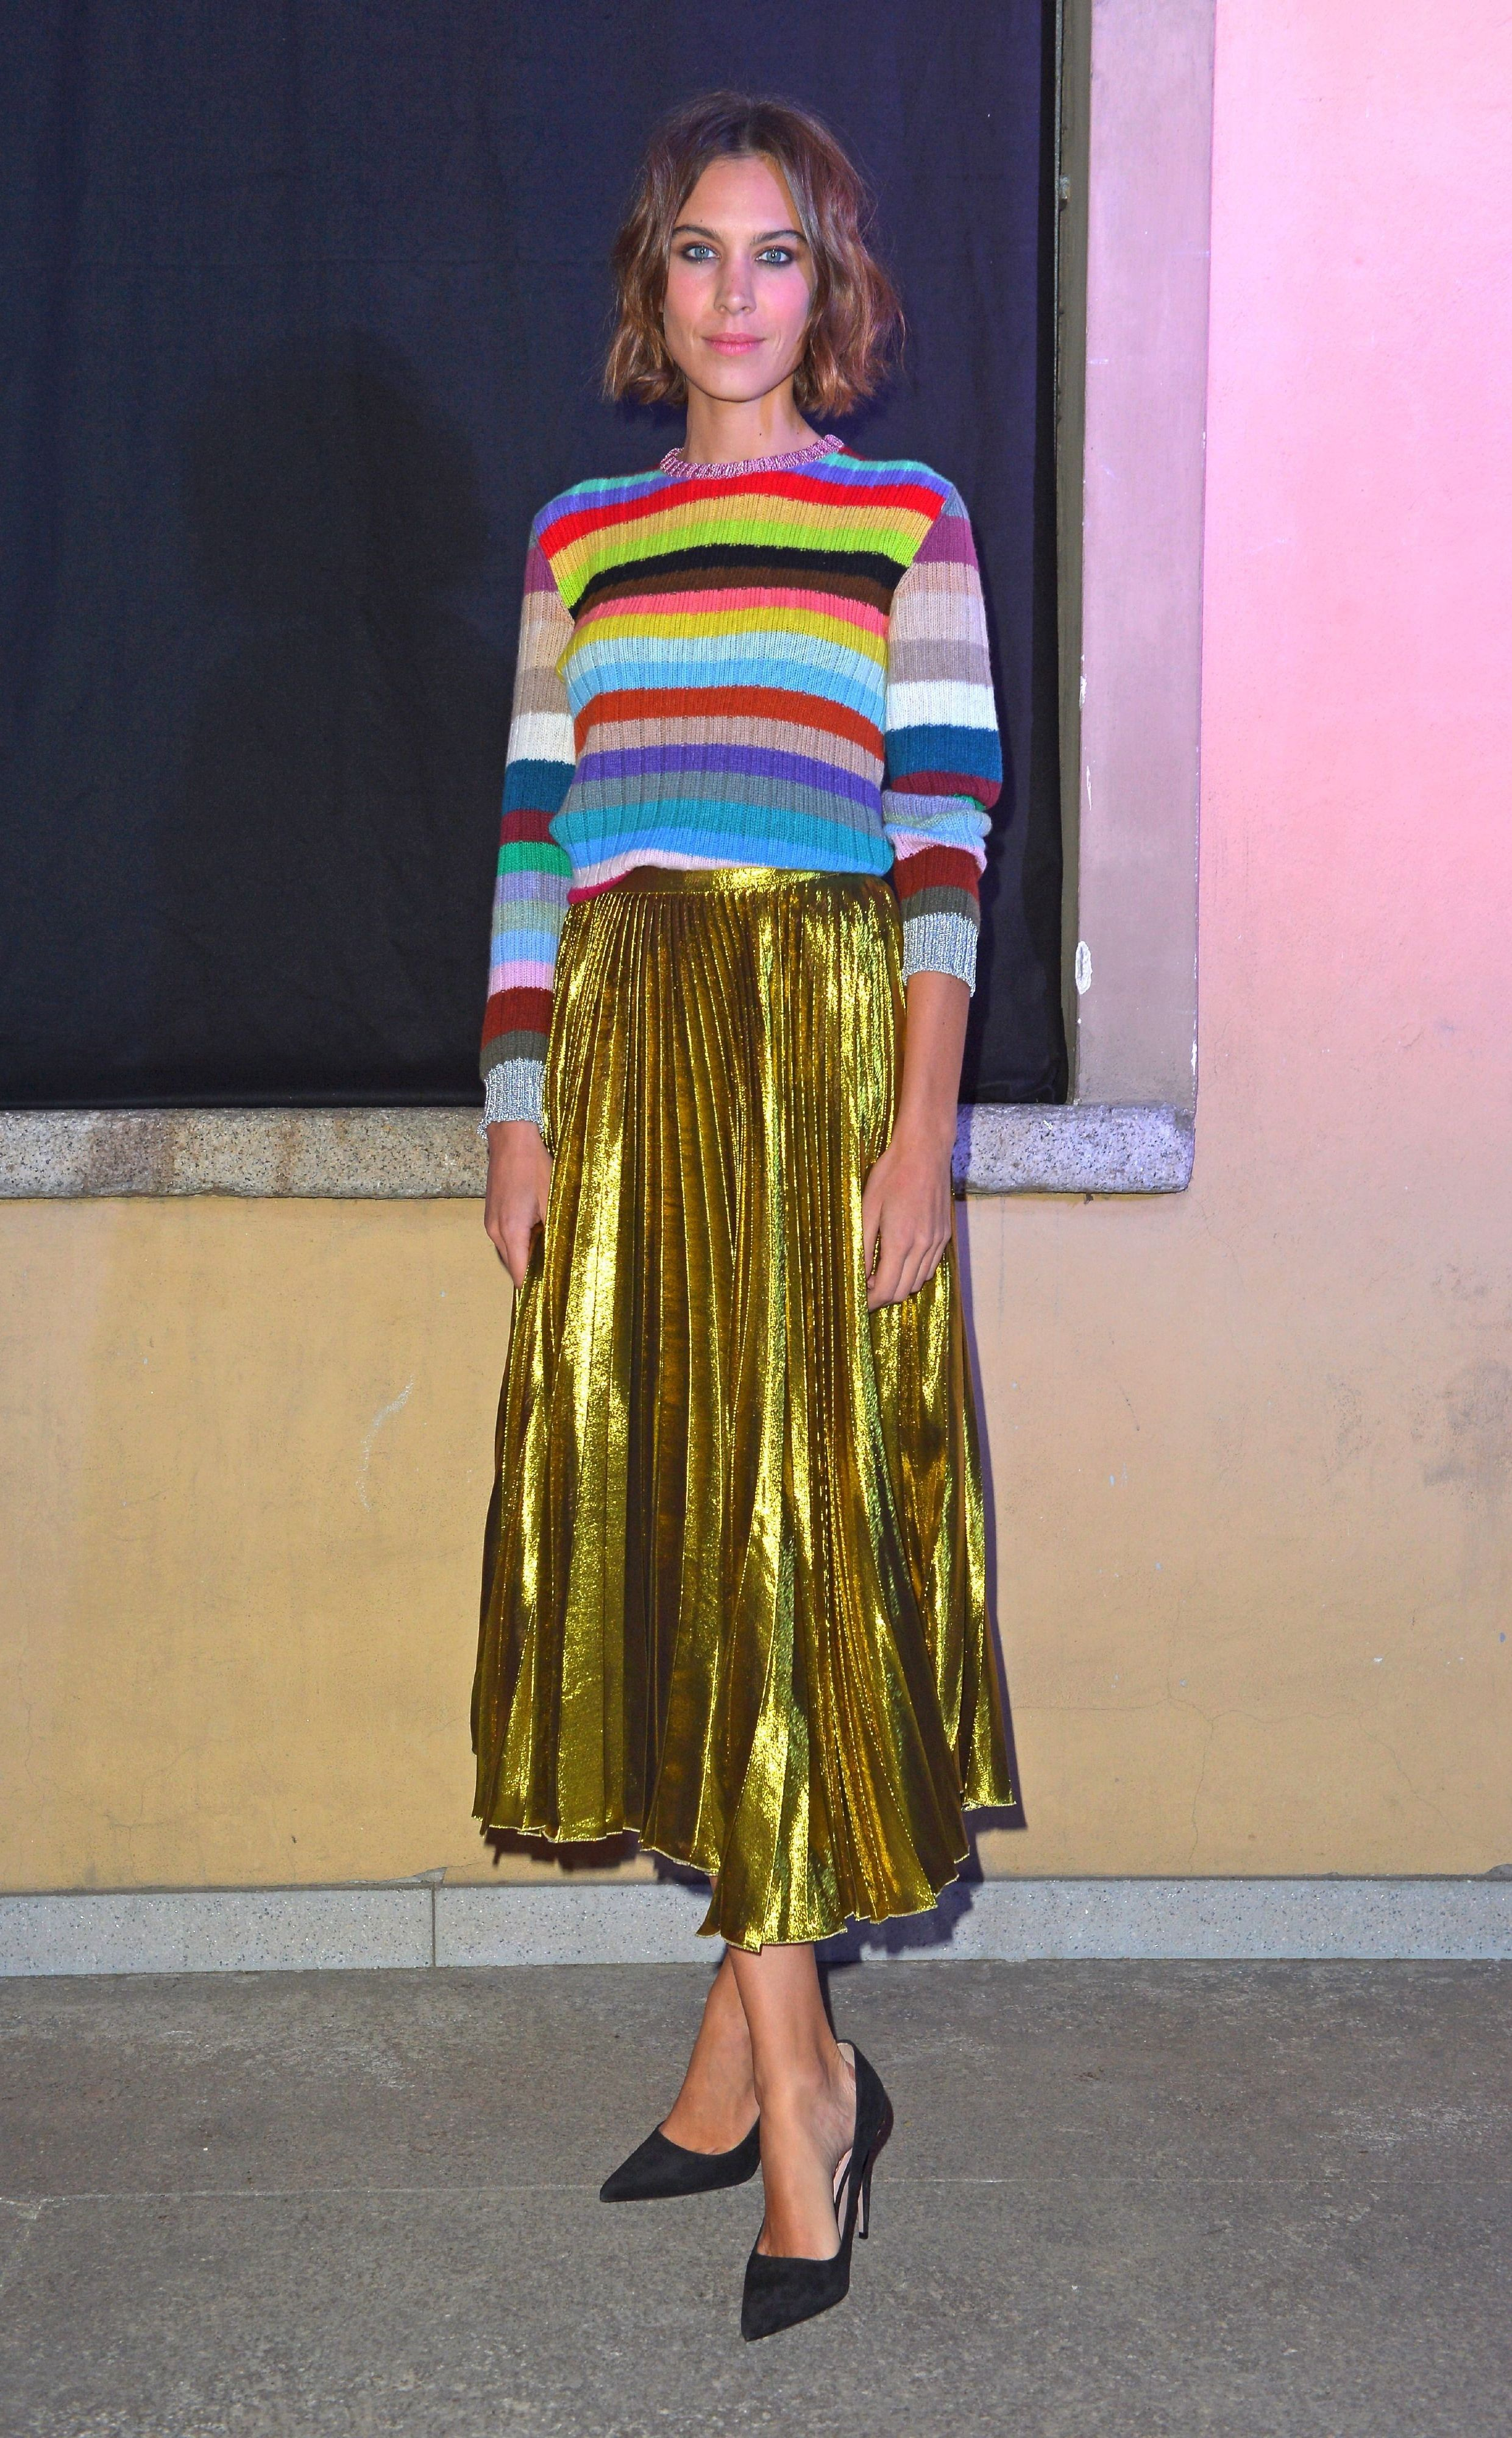 Alexa Chung wears a rainbow stripped knit with a metallic pleated midi skirt and black pumps.